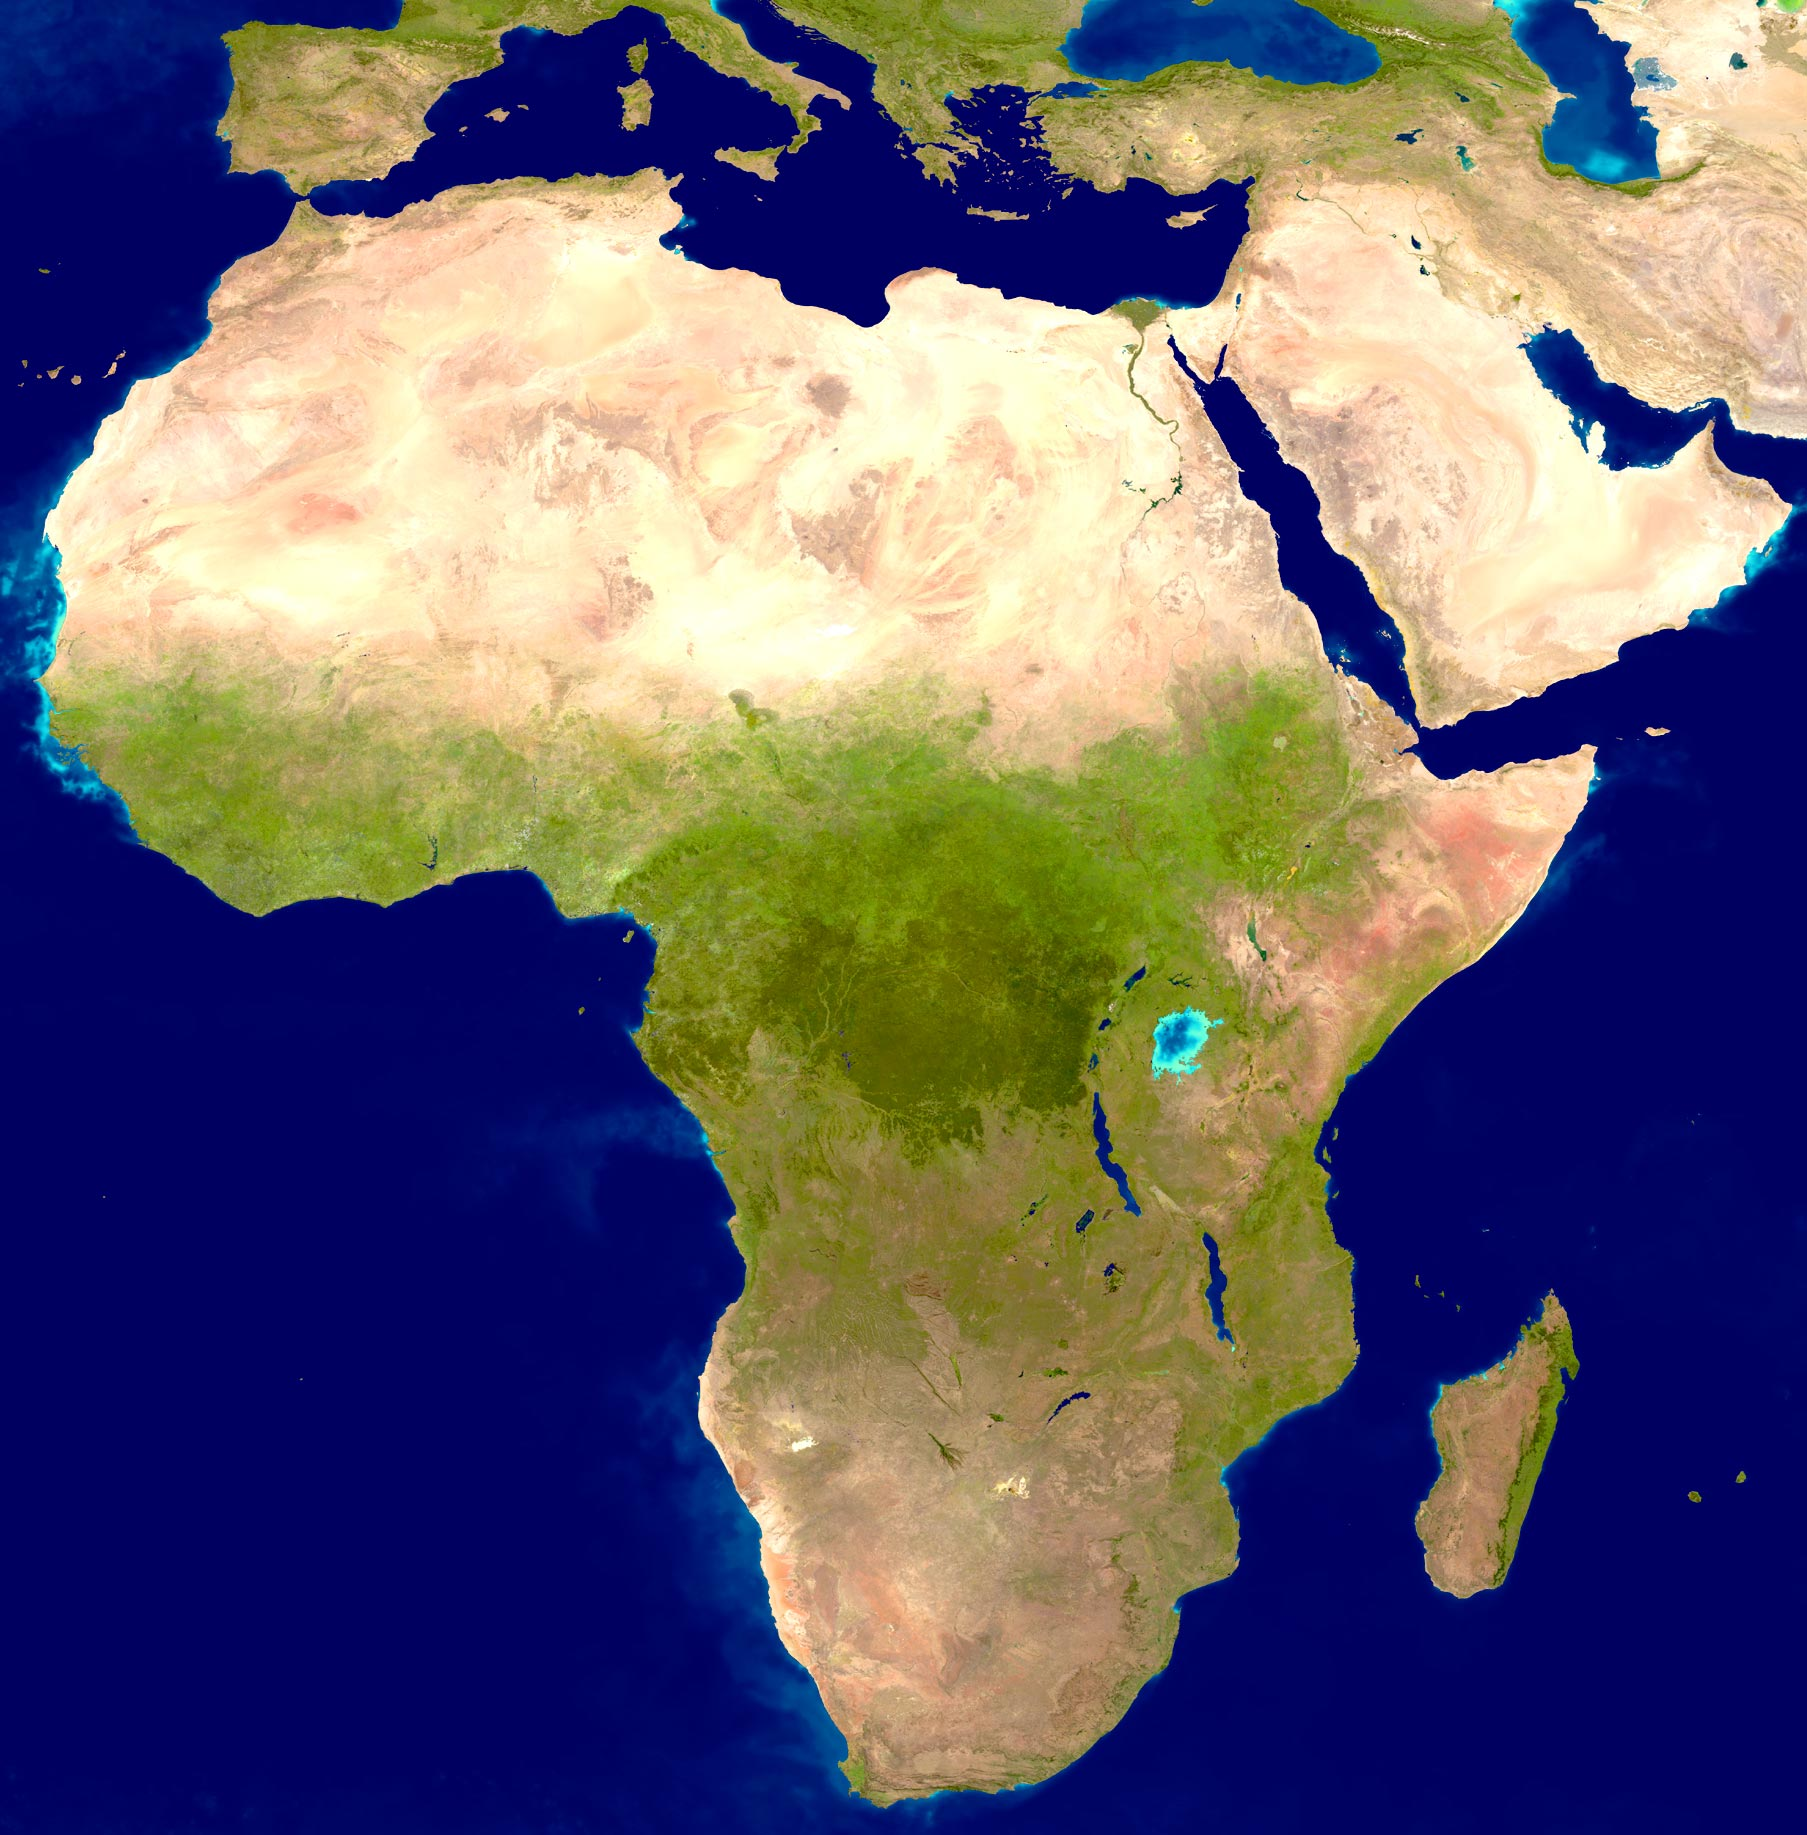 Africa Image, Sahara Desert and Forests